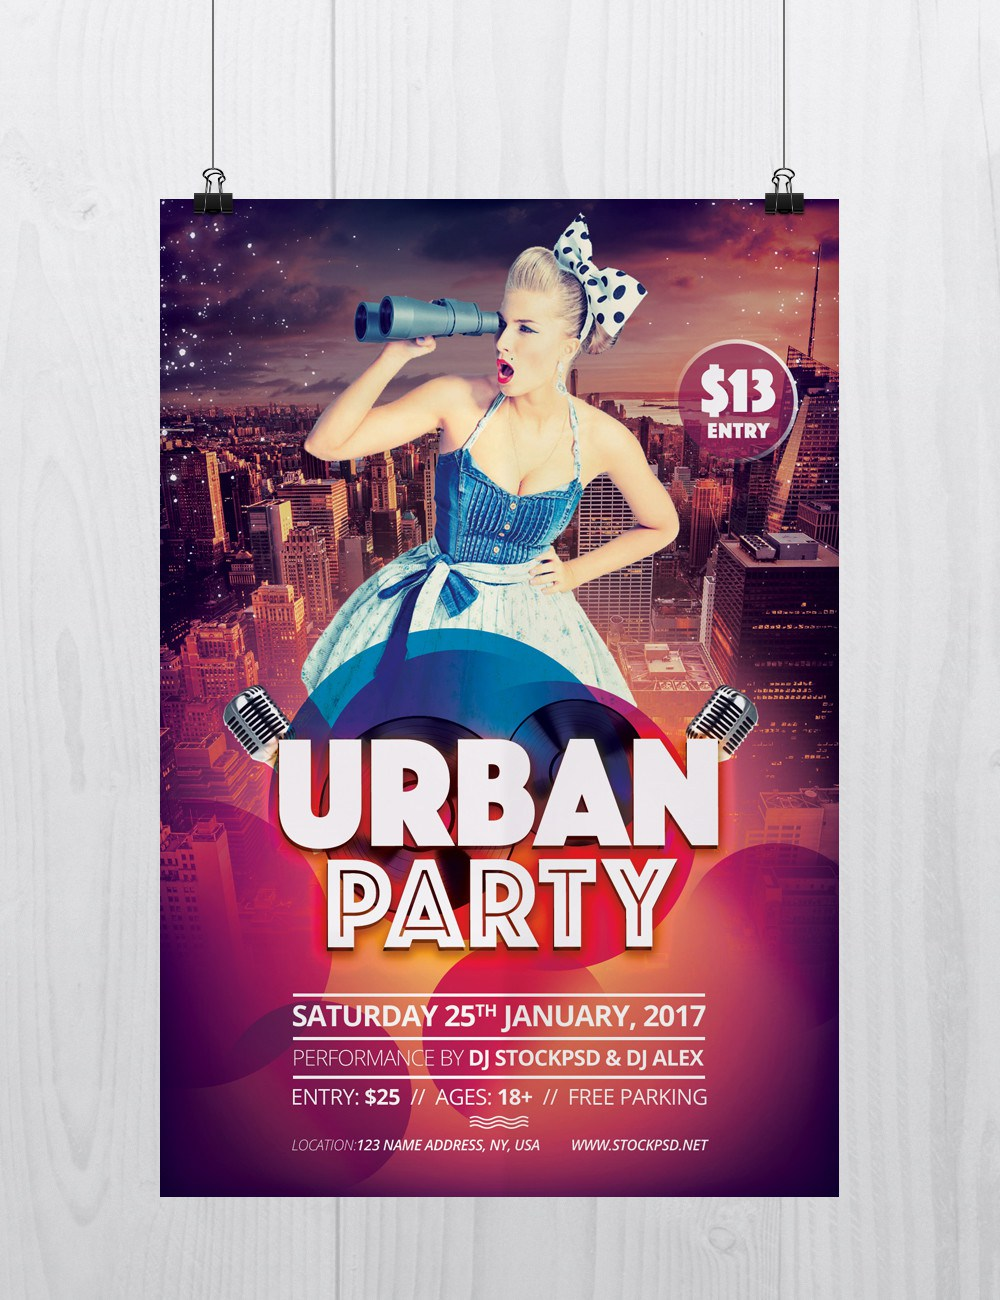 Urban Party Download Free Psd Flyer Template Freebiedesign